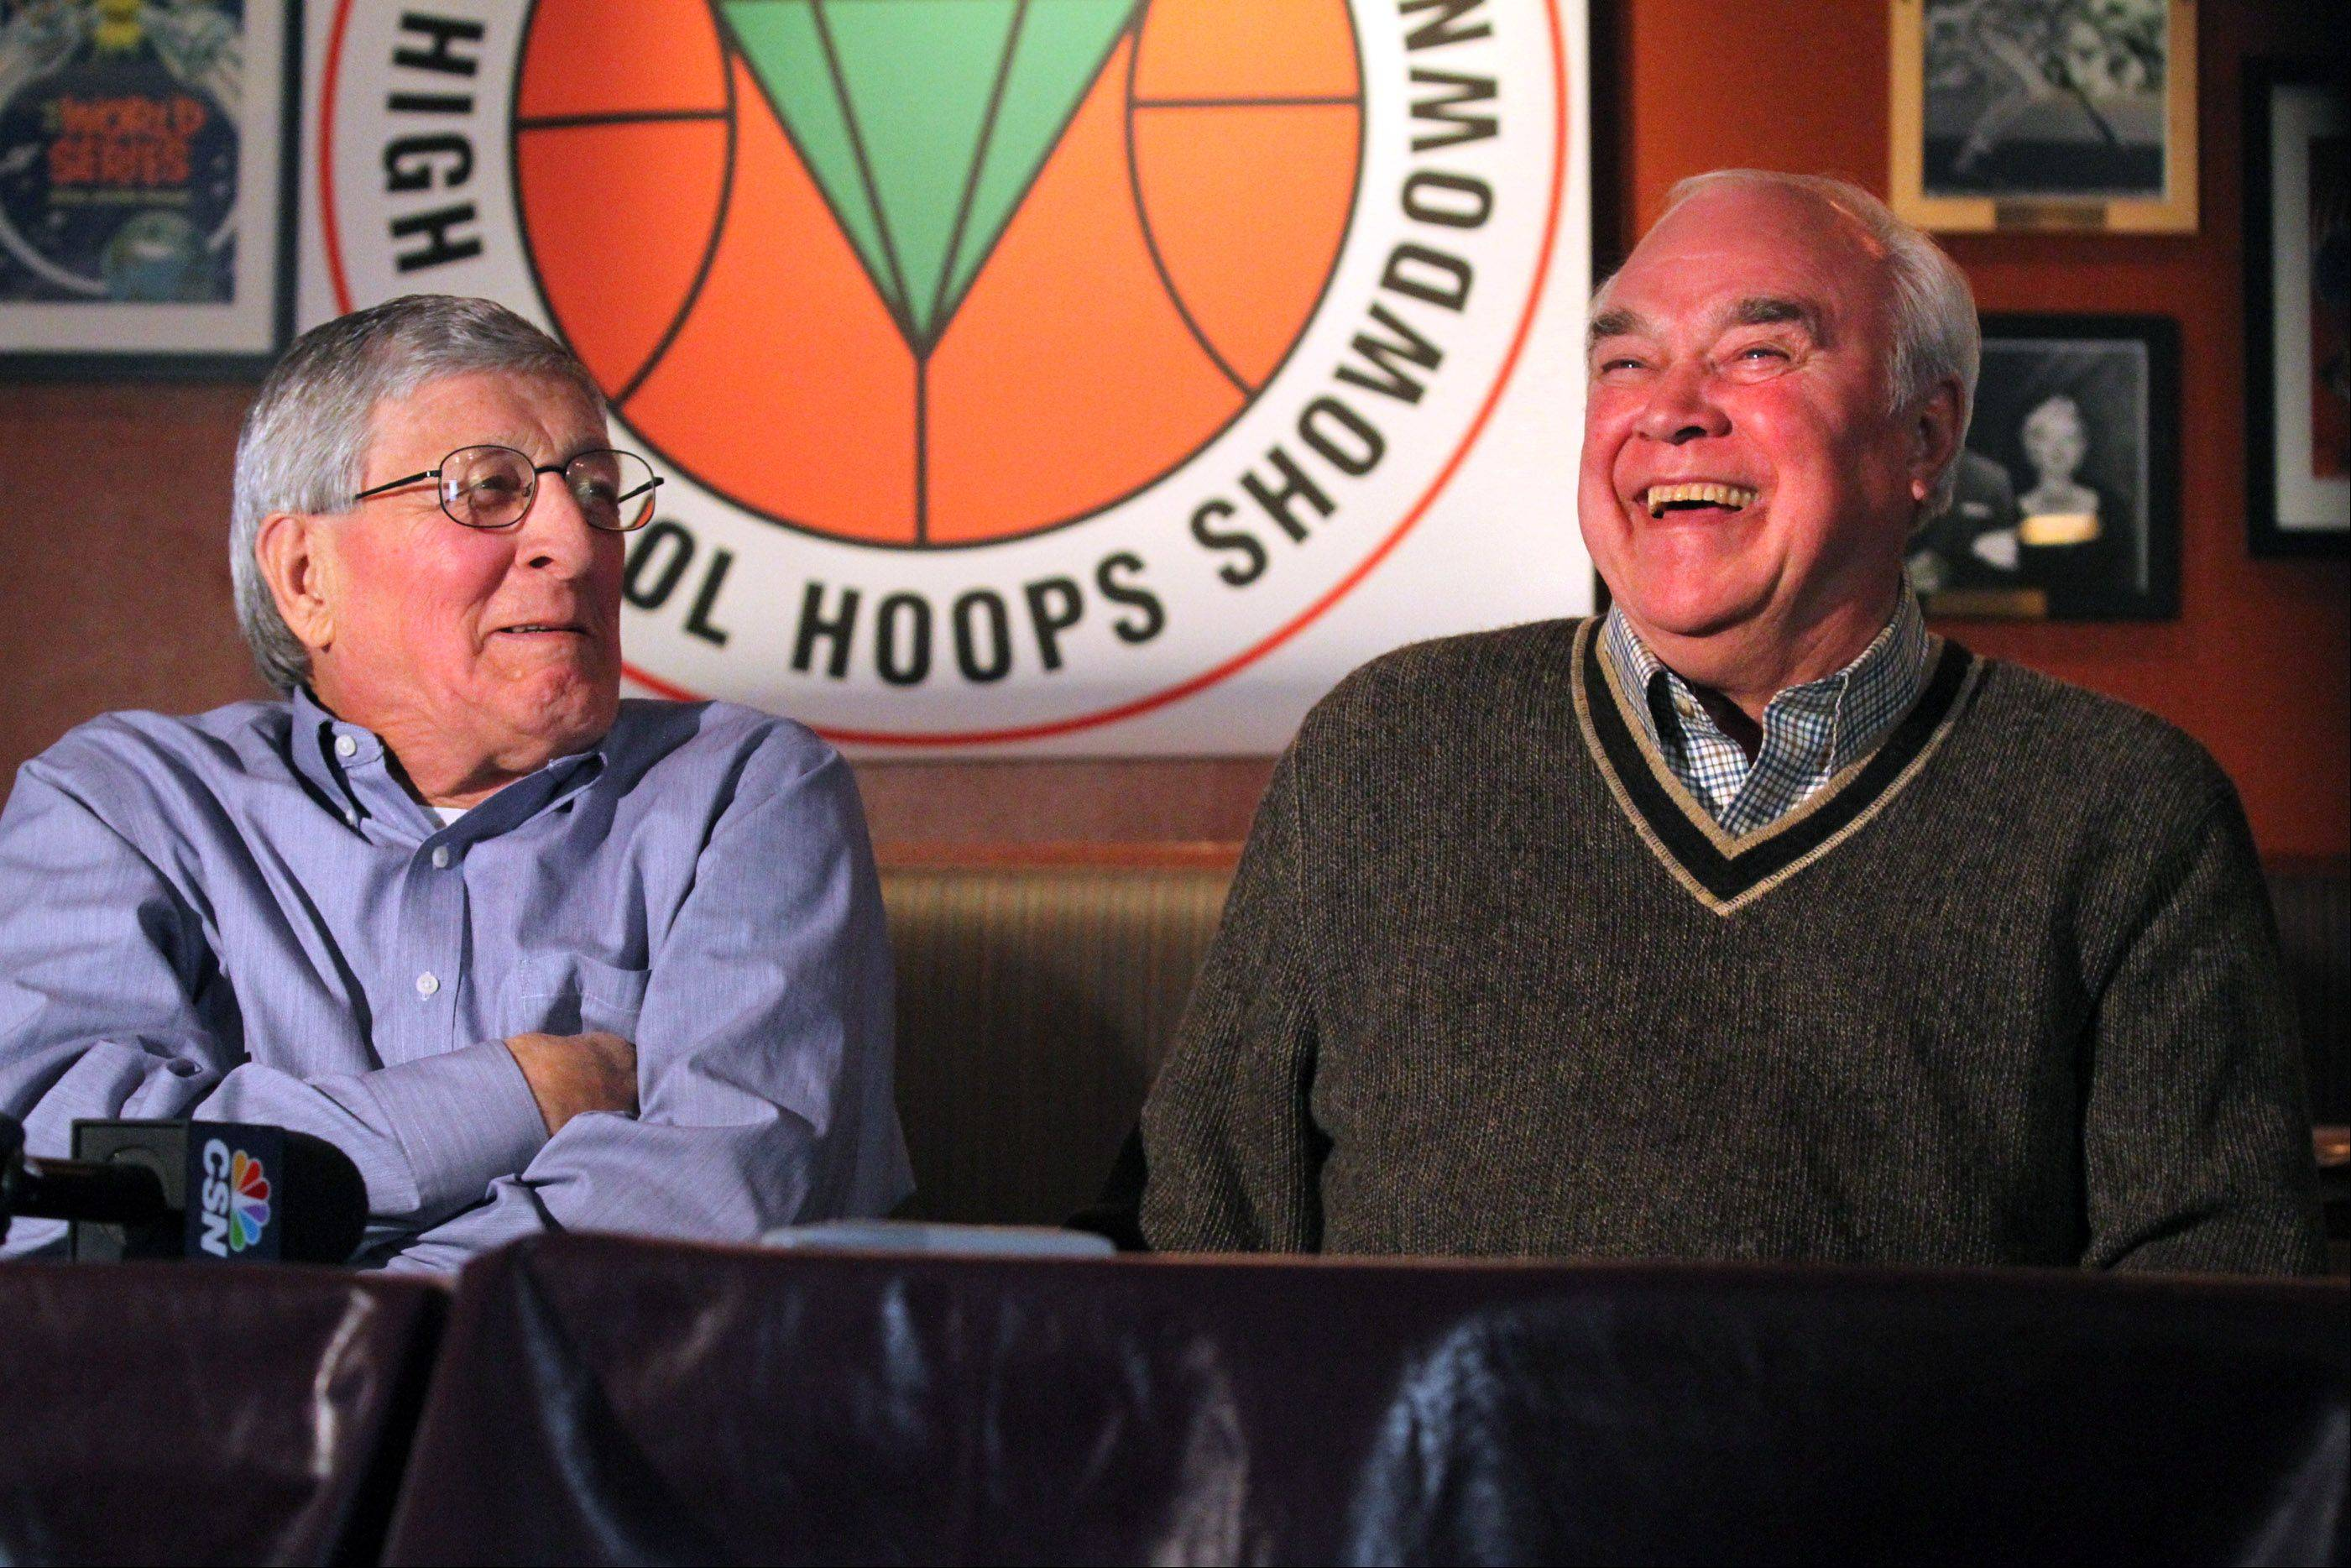 St. Joseph boys basketball coach Gene Pingatore, left, and West Aurora coach Gordie Kerkman, whose teams will play each other in game three of the National Guard High School Hoops Showdown at the Sears Centre on Saturday, enjoy a moment during a news conference at Lou Malnati�s Pizzeria in Schaumburg on Wednesday.